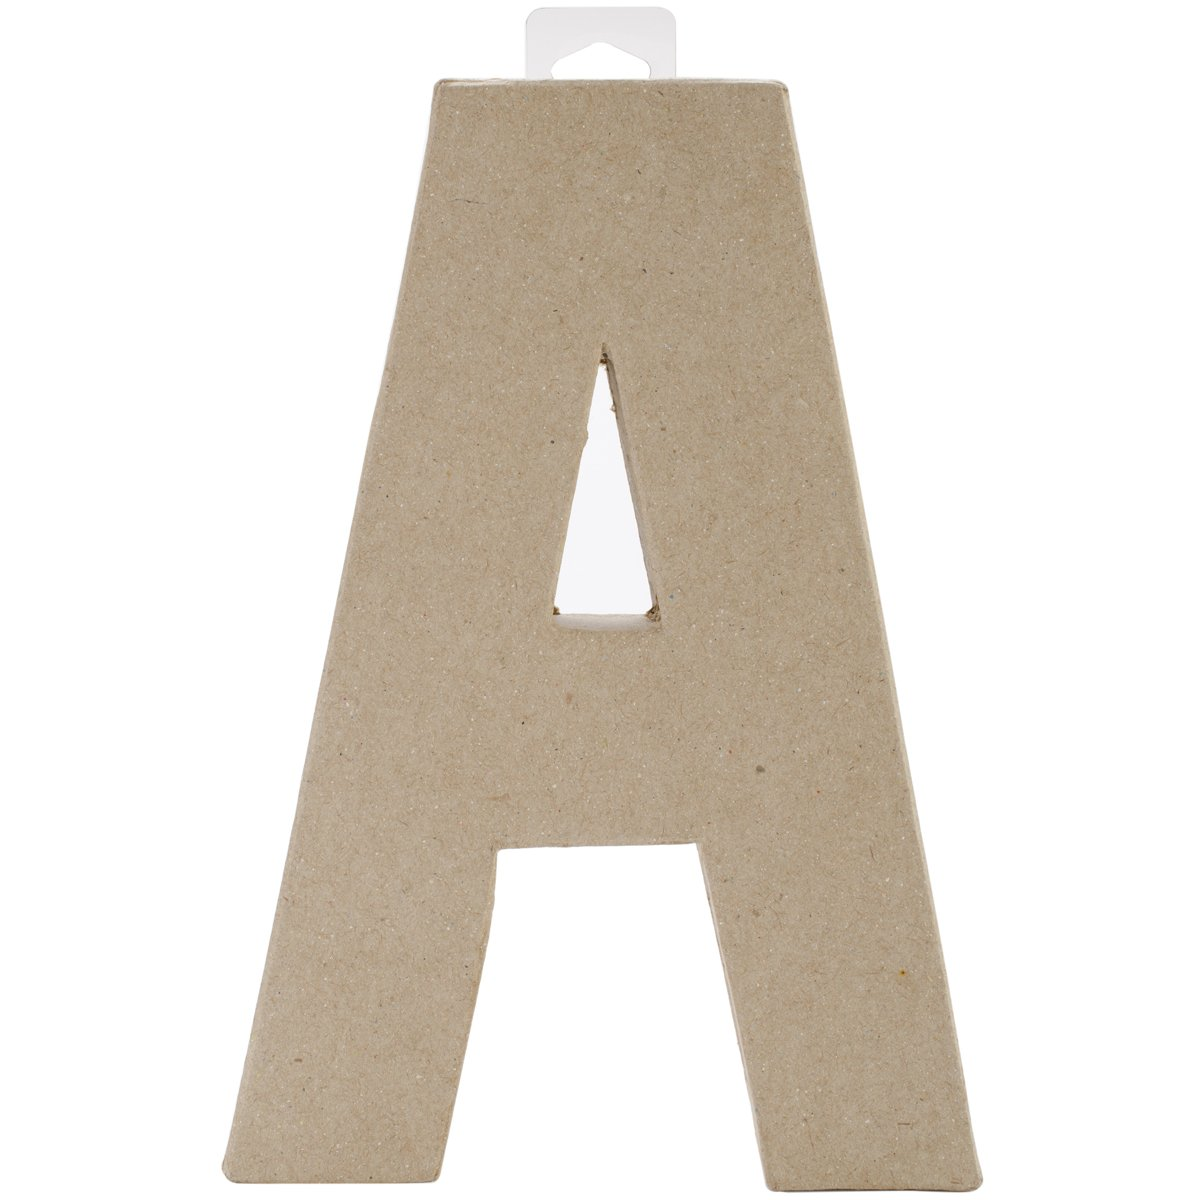 amazoncom paper mache letter a 8 x 55 x 1 inches home kitchen